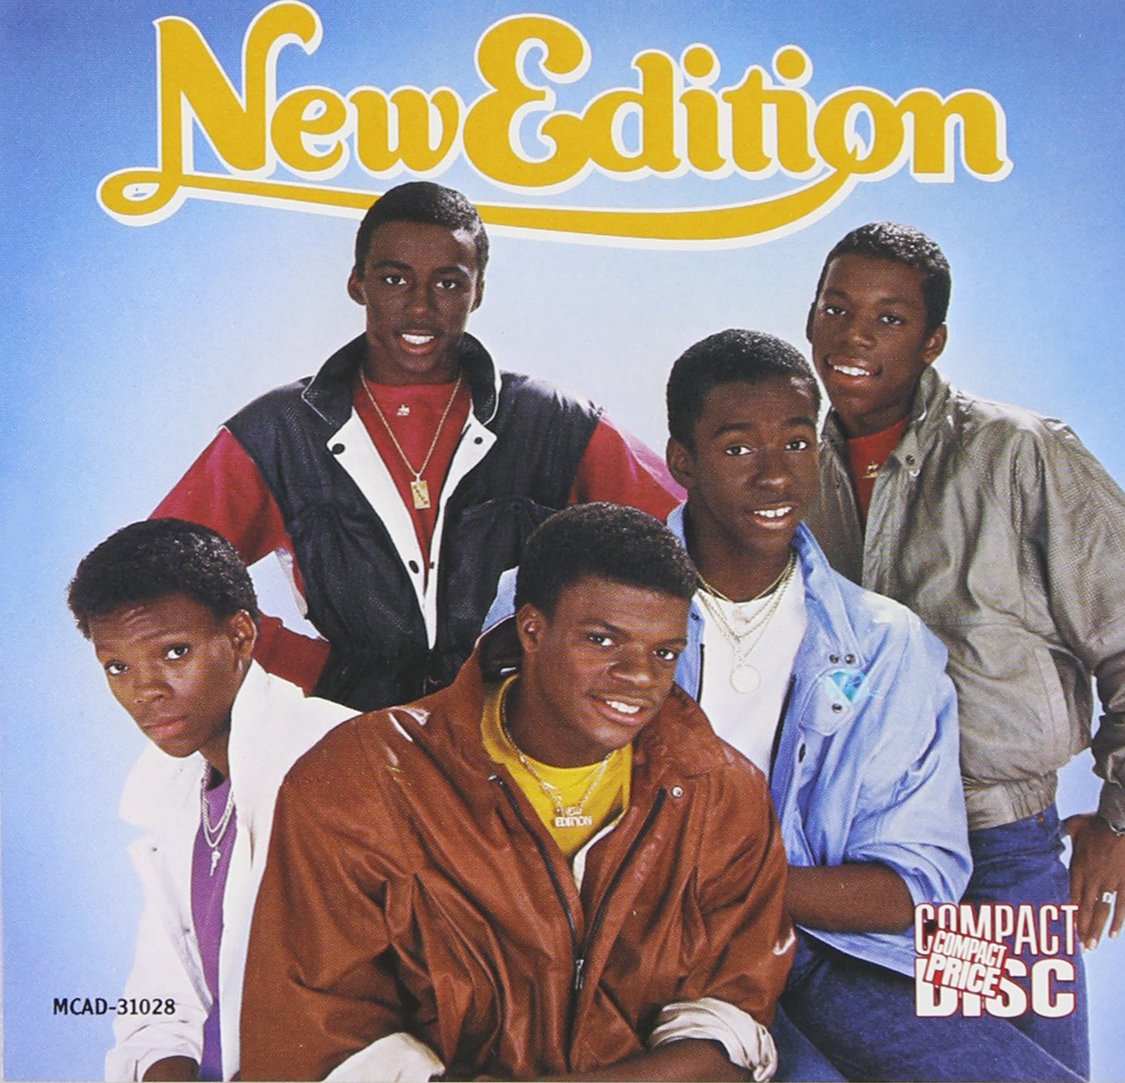 New Edition by MCA